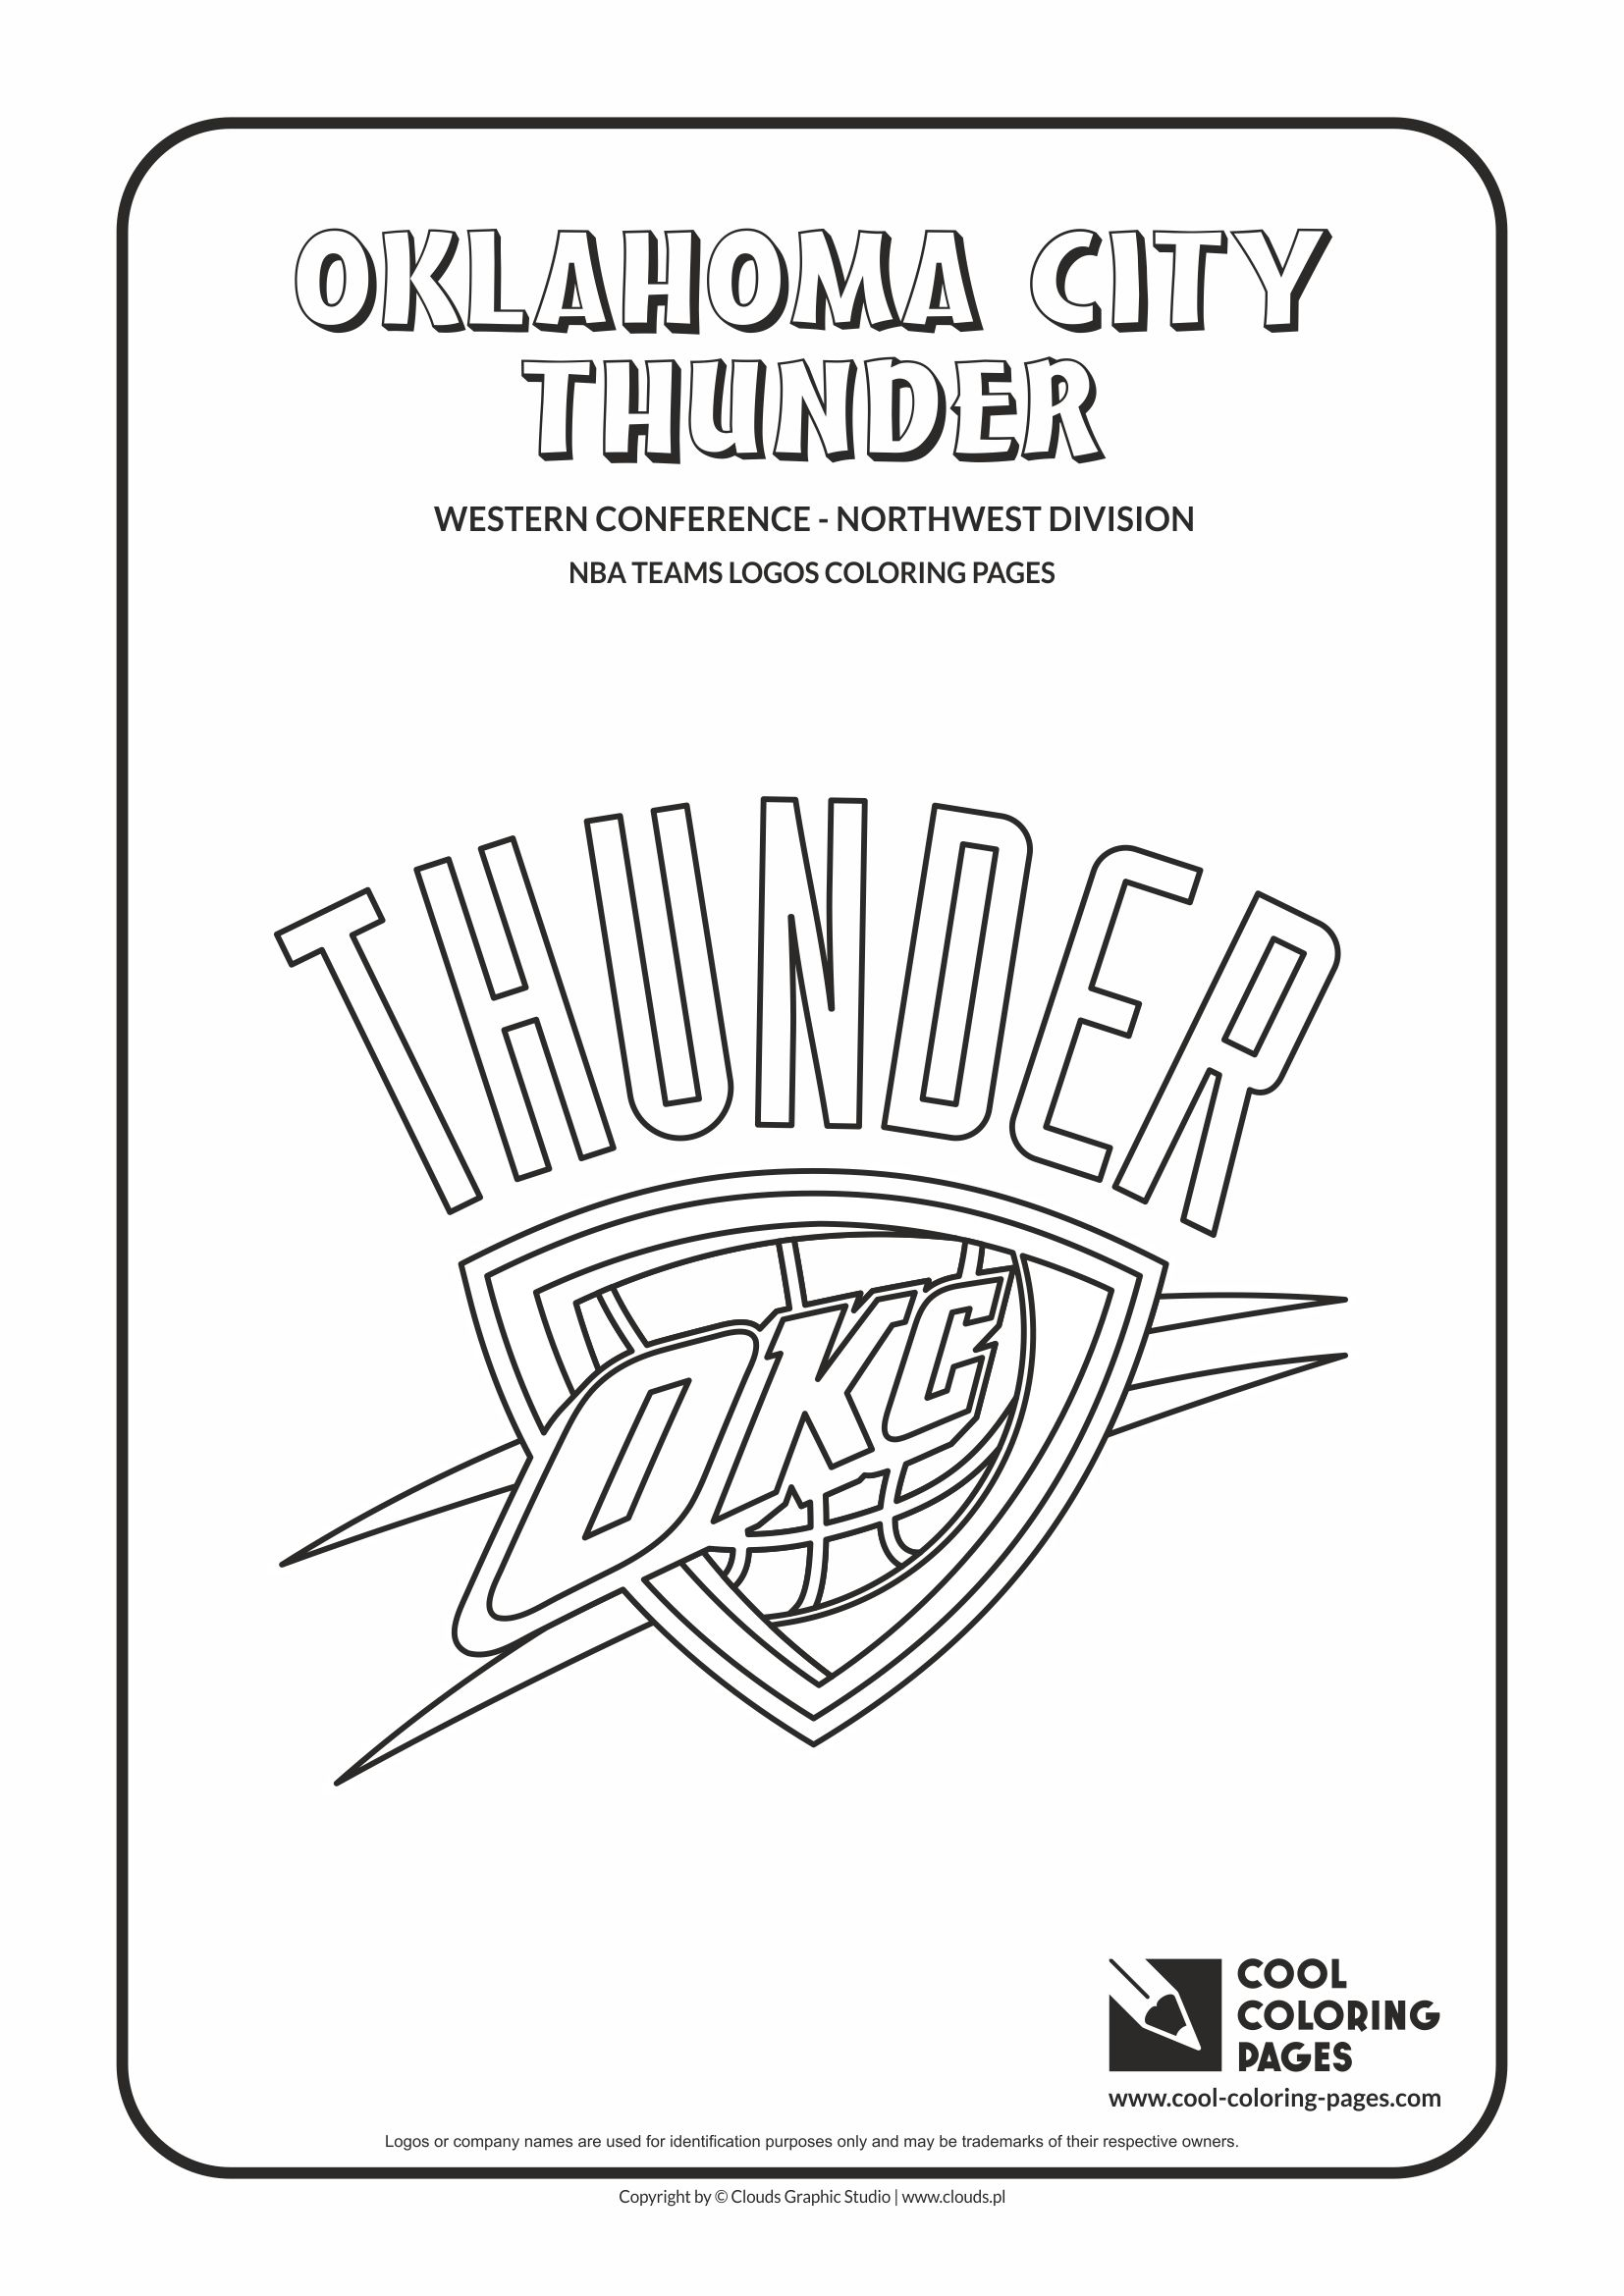 Cool coloring pages nba basketball clubs logos western conference northwest division oklahoma